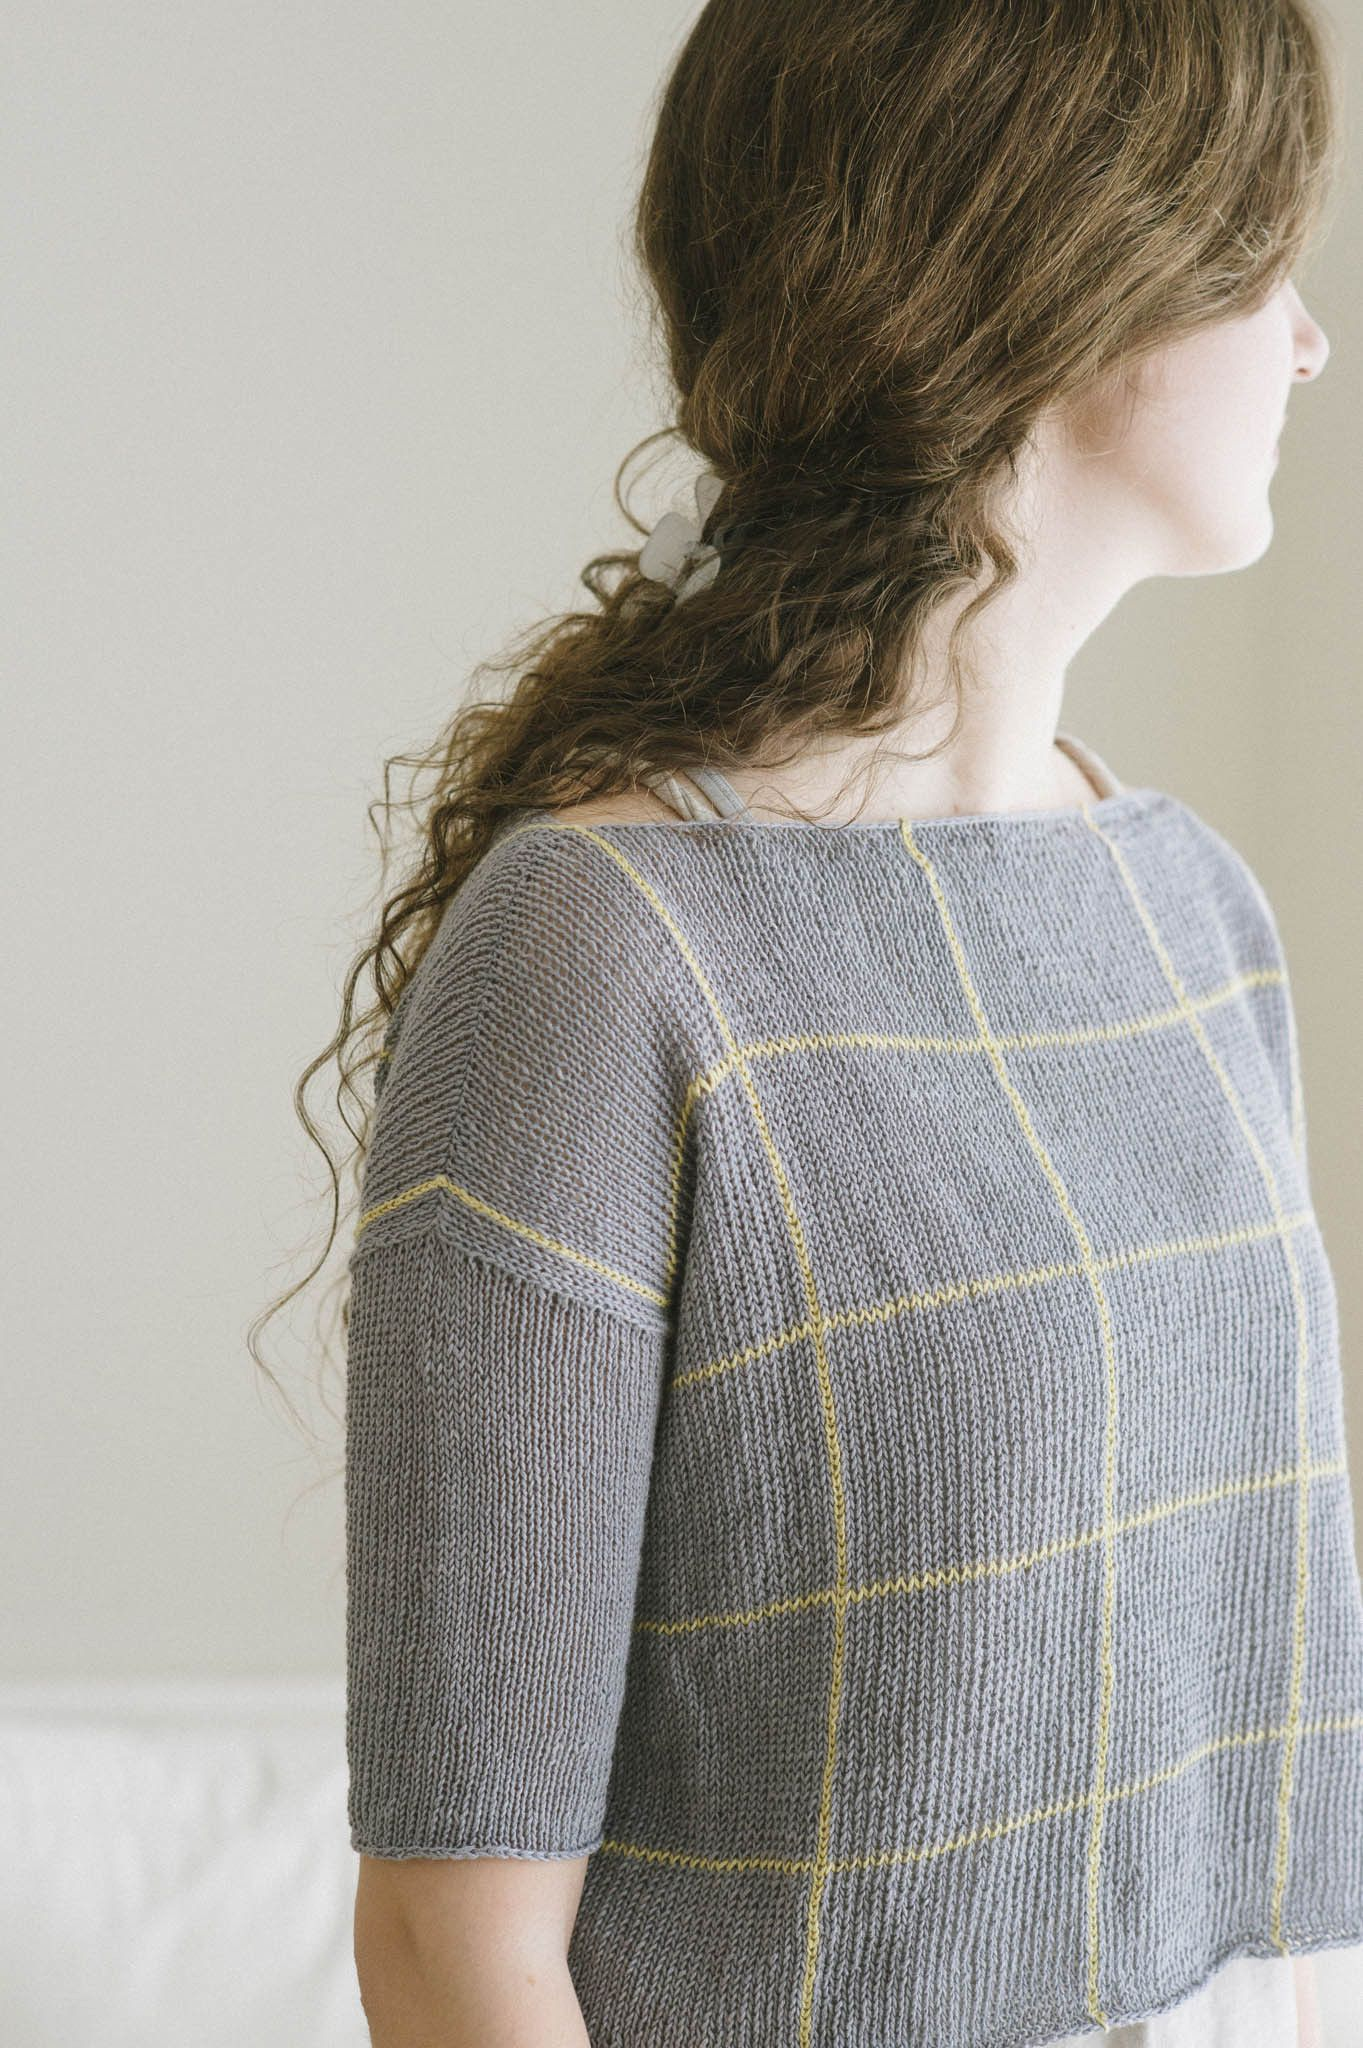 Zara designed by dianna walla from the sparrow 2016 design team sparrow 2016 knitting pattern collection dt1010fo